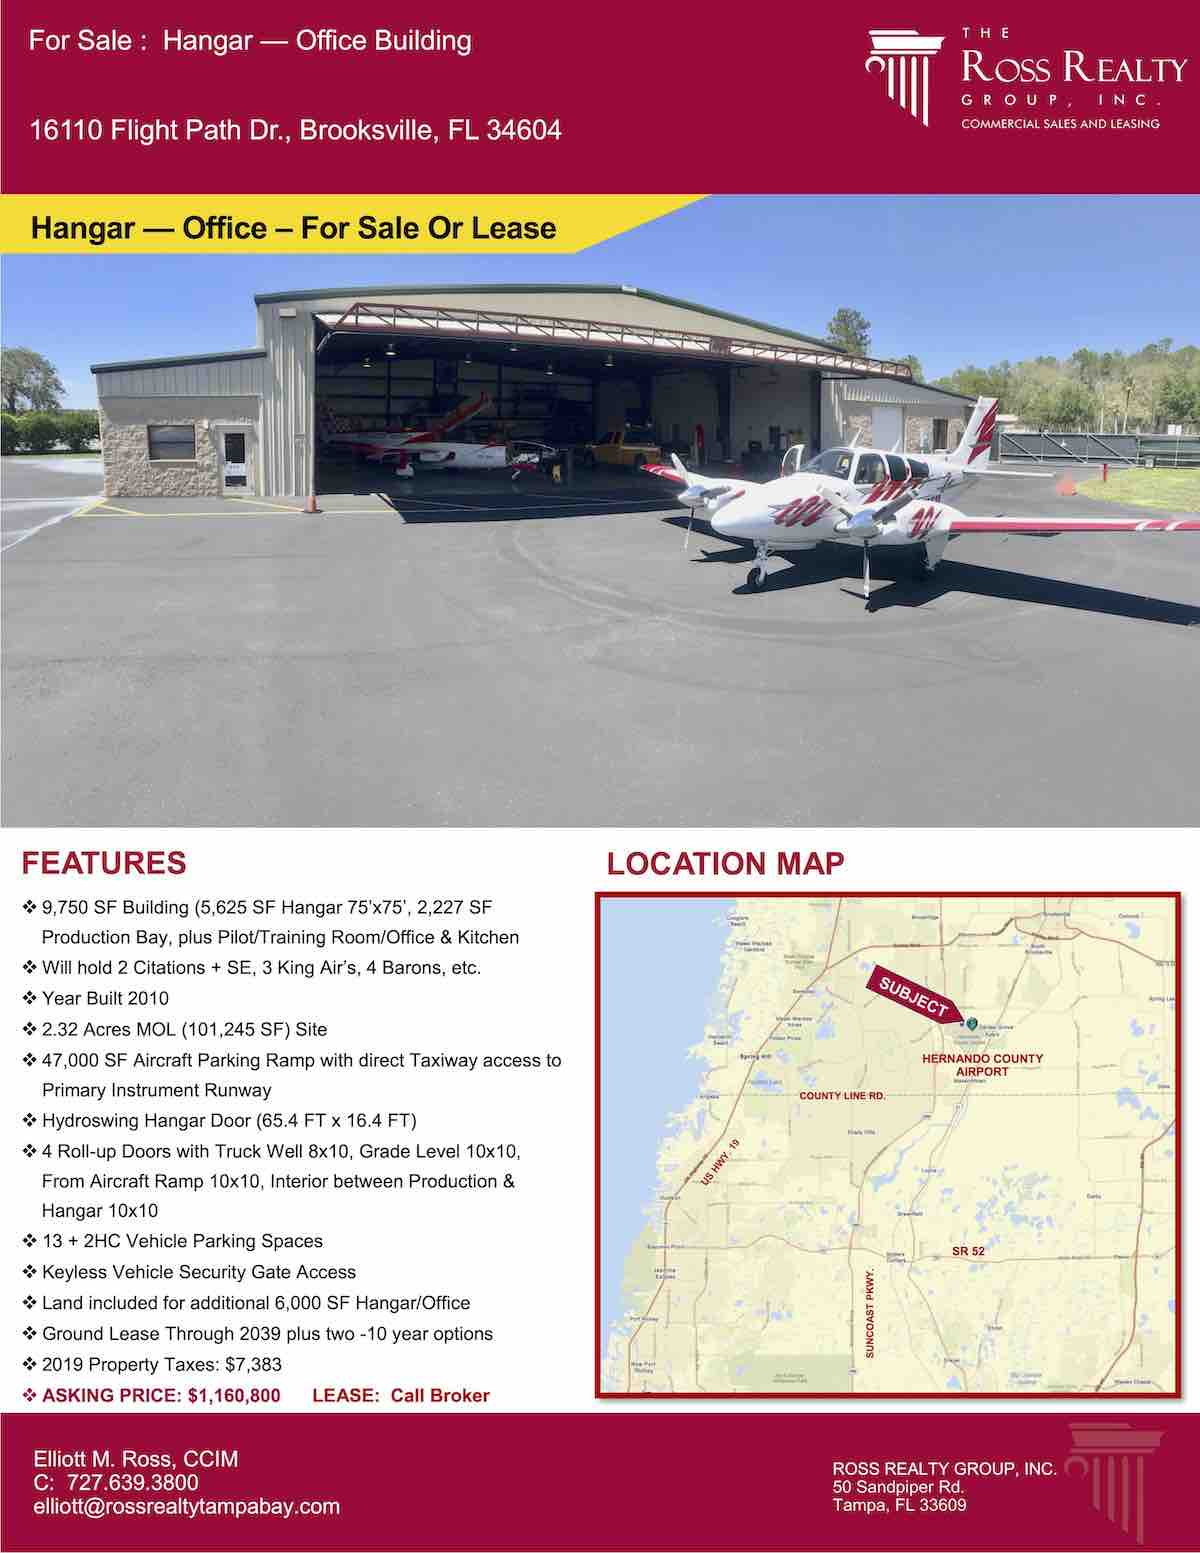 Tampa Commercial Real Estate - FOR SALE - Hangar - Office Building - 16110 Flight Path Dr., Brooksville, FL 34604 P1